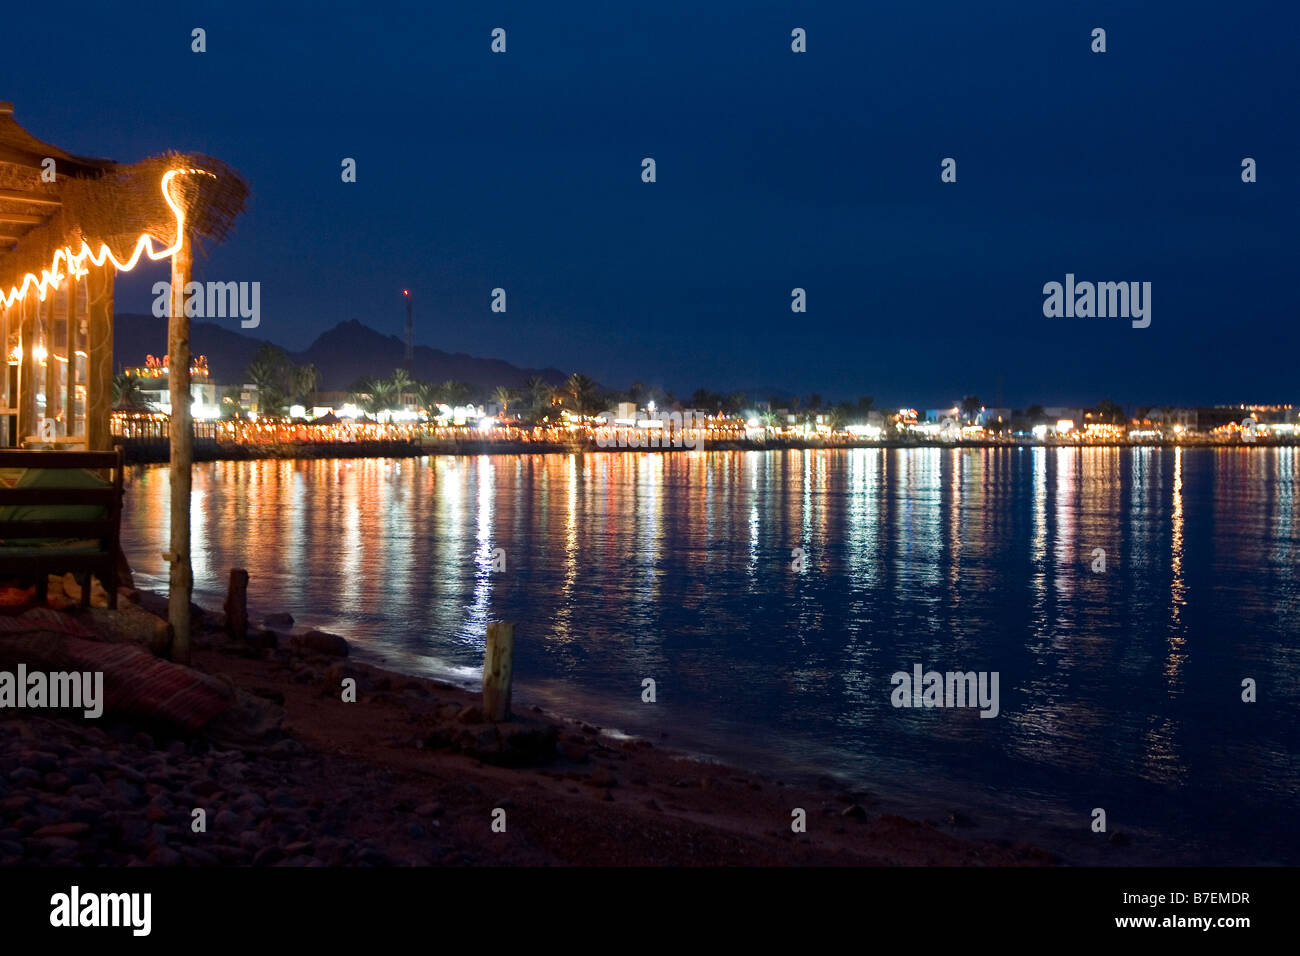 dahab waterfront at night in Egypt - Stock Image